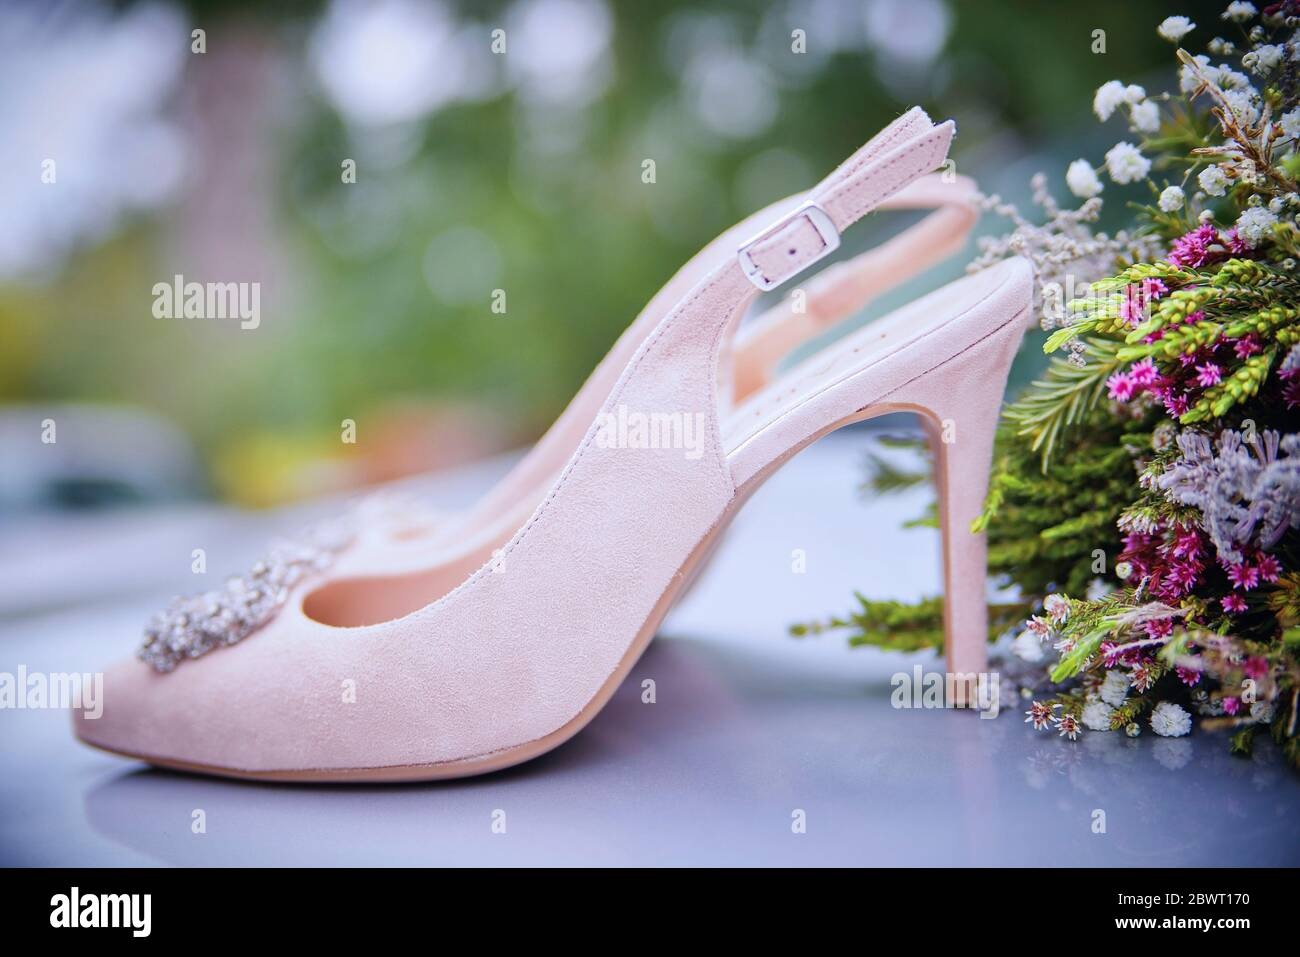 Detail of wedding shoes next to bouquet